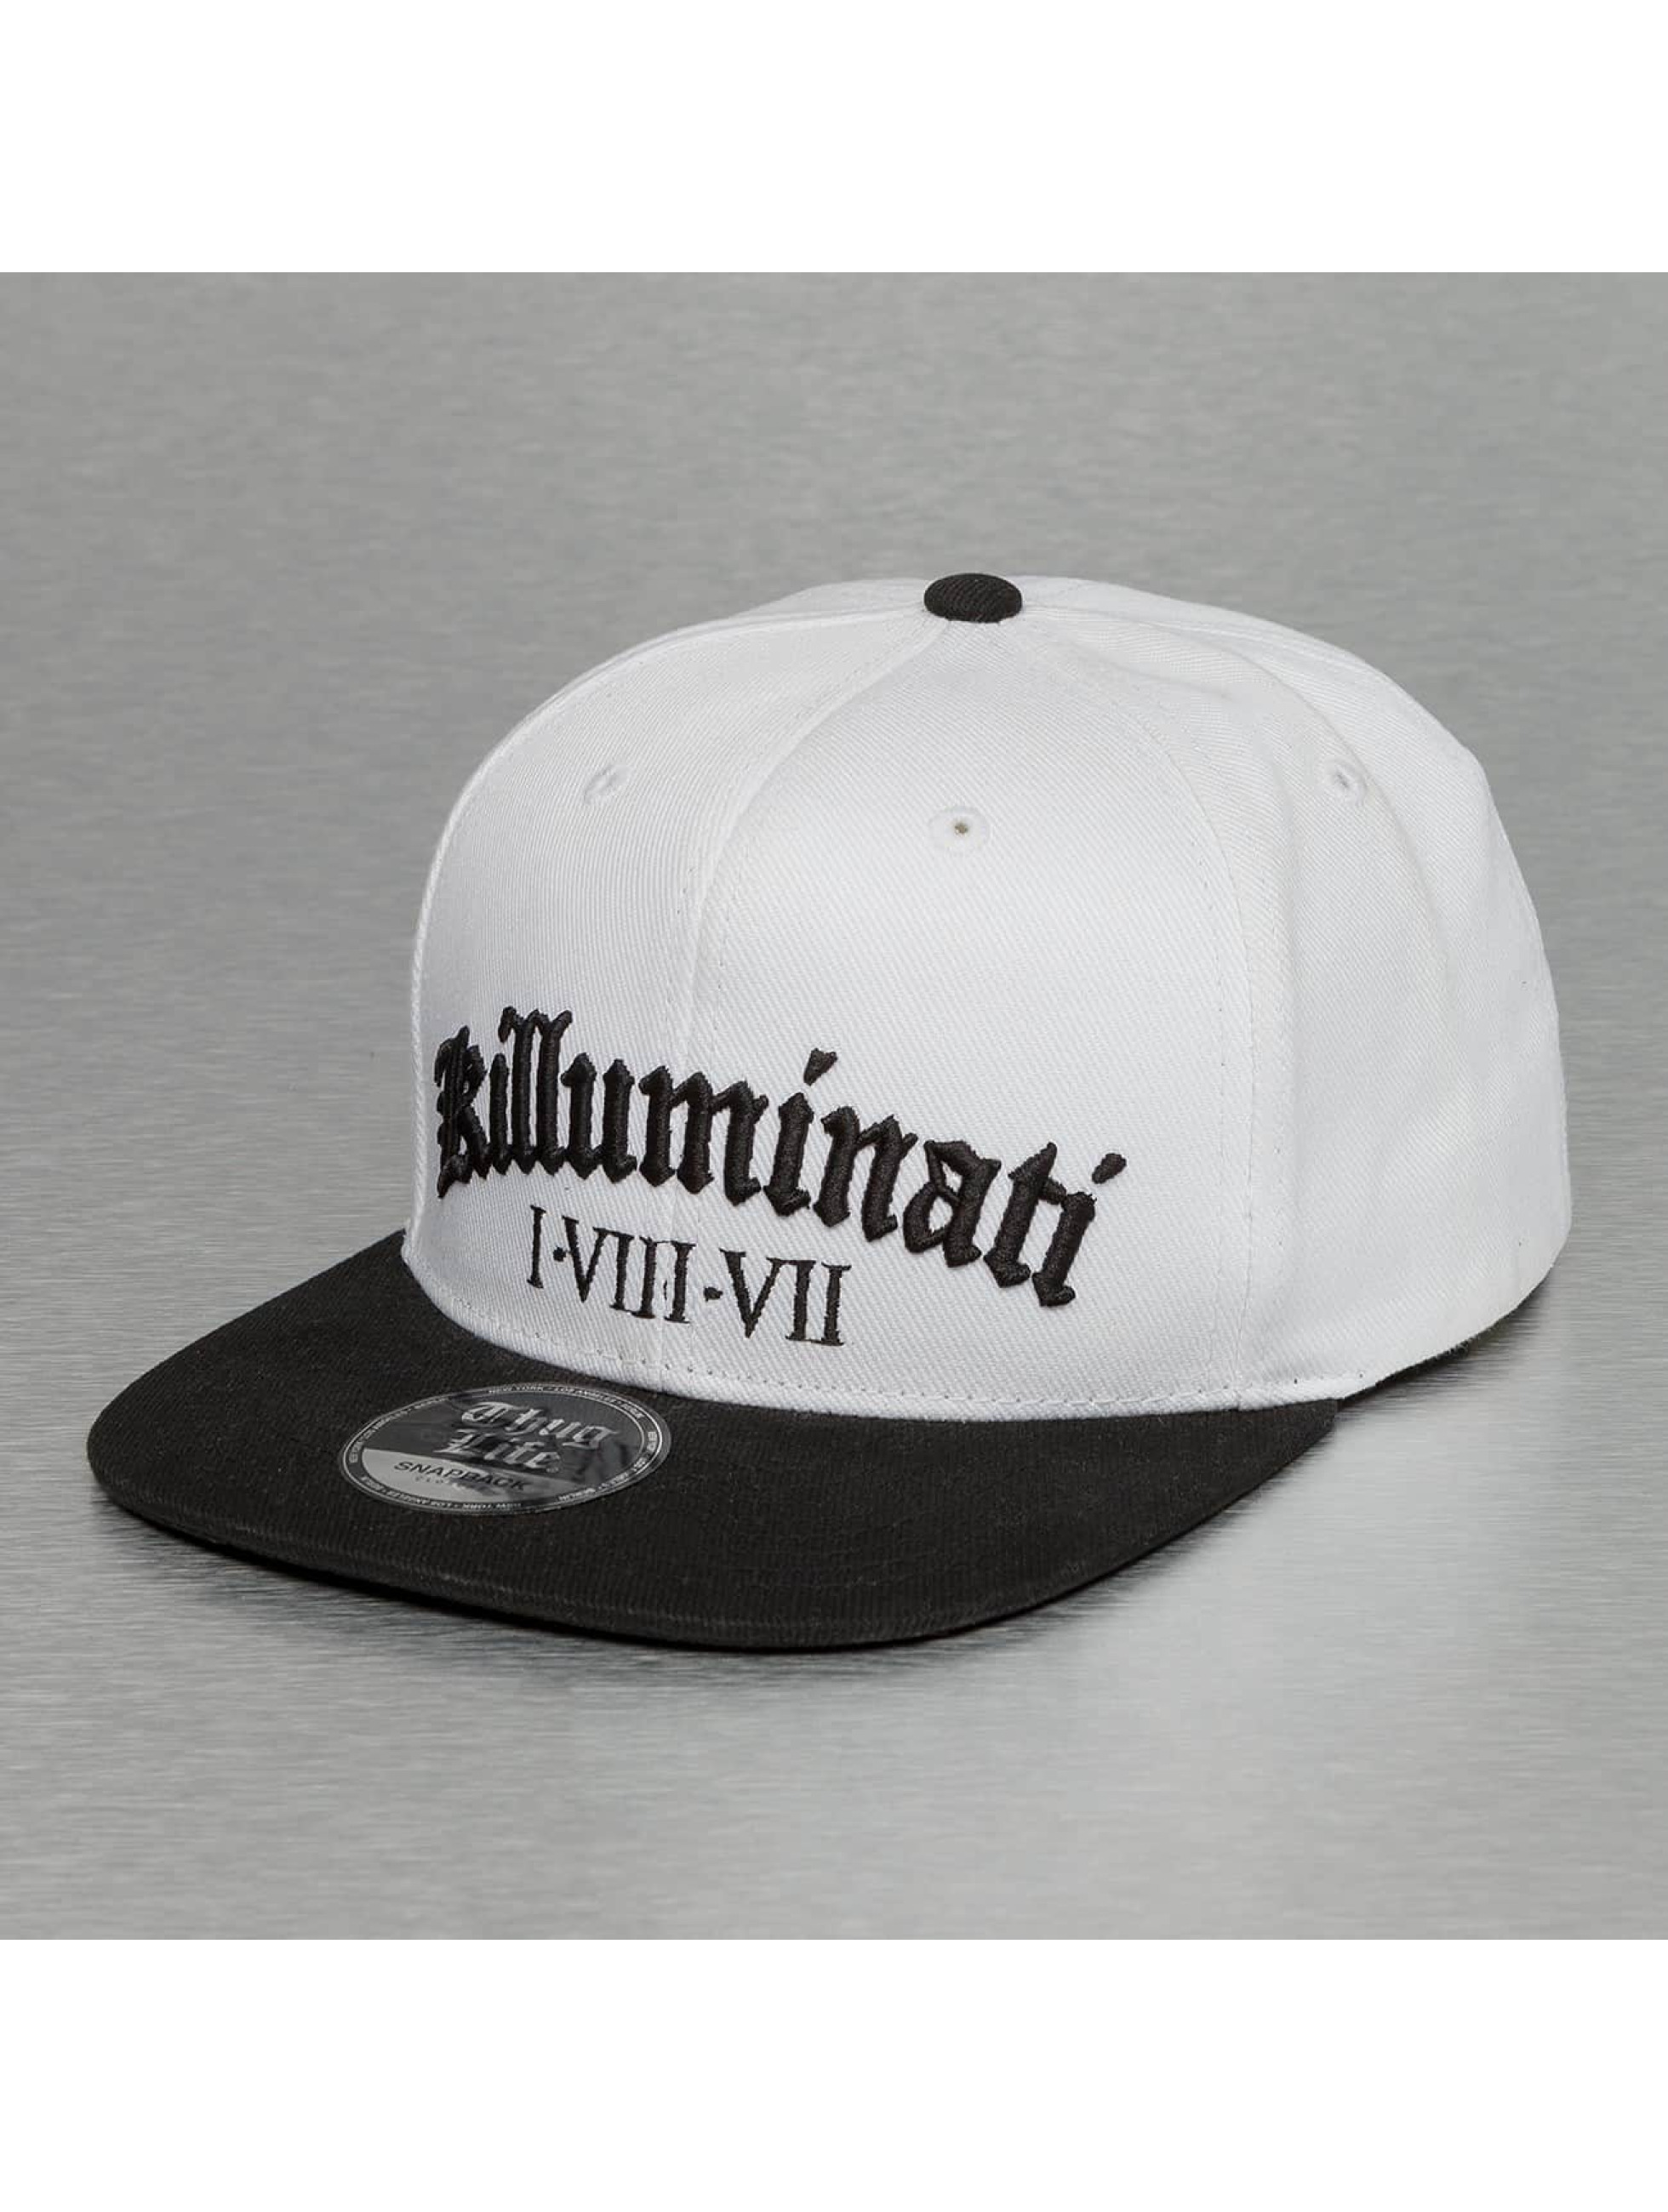 Thug Life / Snapback Cap Killuminati in white Adjustable